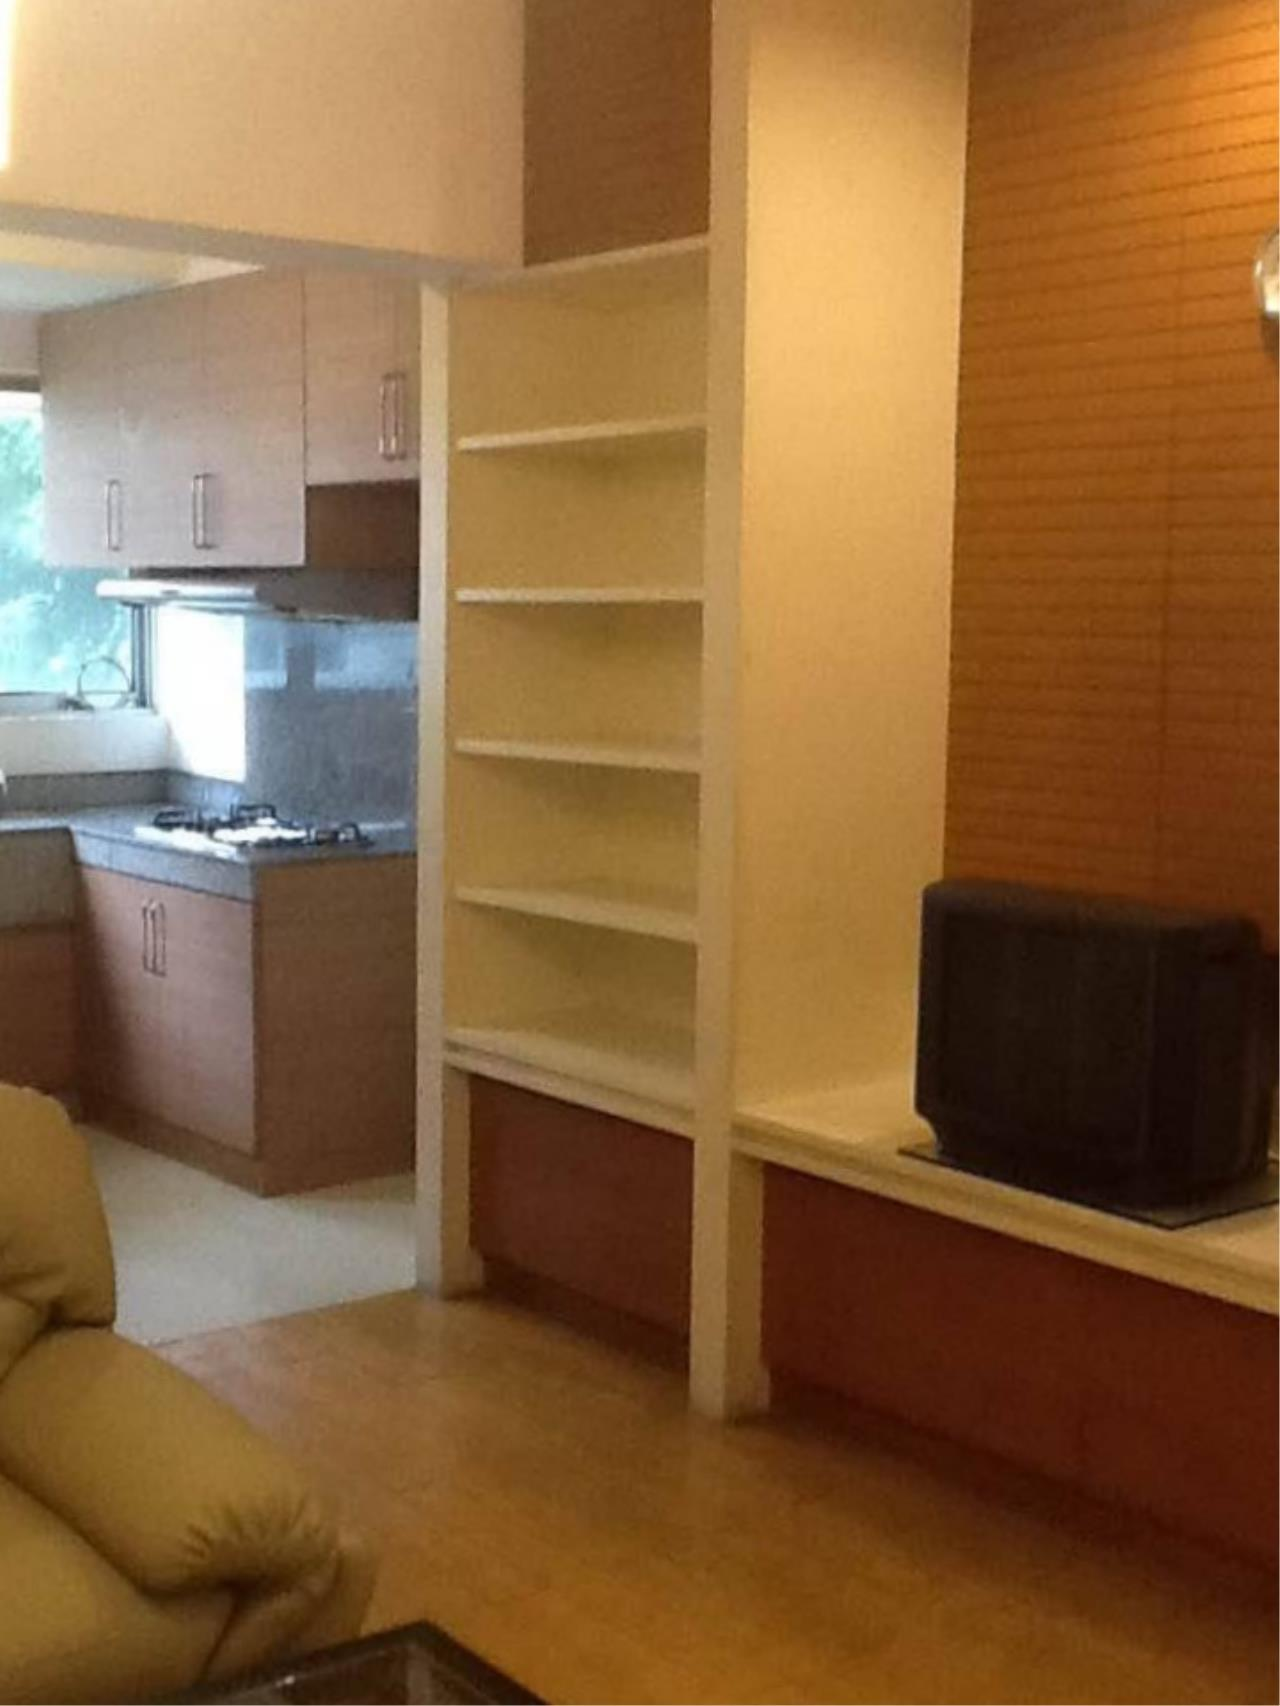 Century21 Skylux Agency's Ploenchit Condo / Condo For Rent / 3 Bedroom / 132 SQM / BTS Phloen Chit / Bangkok 4